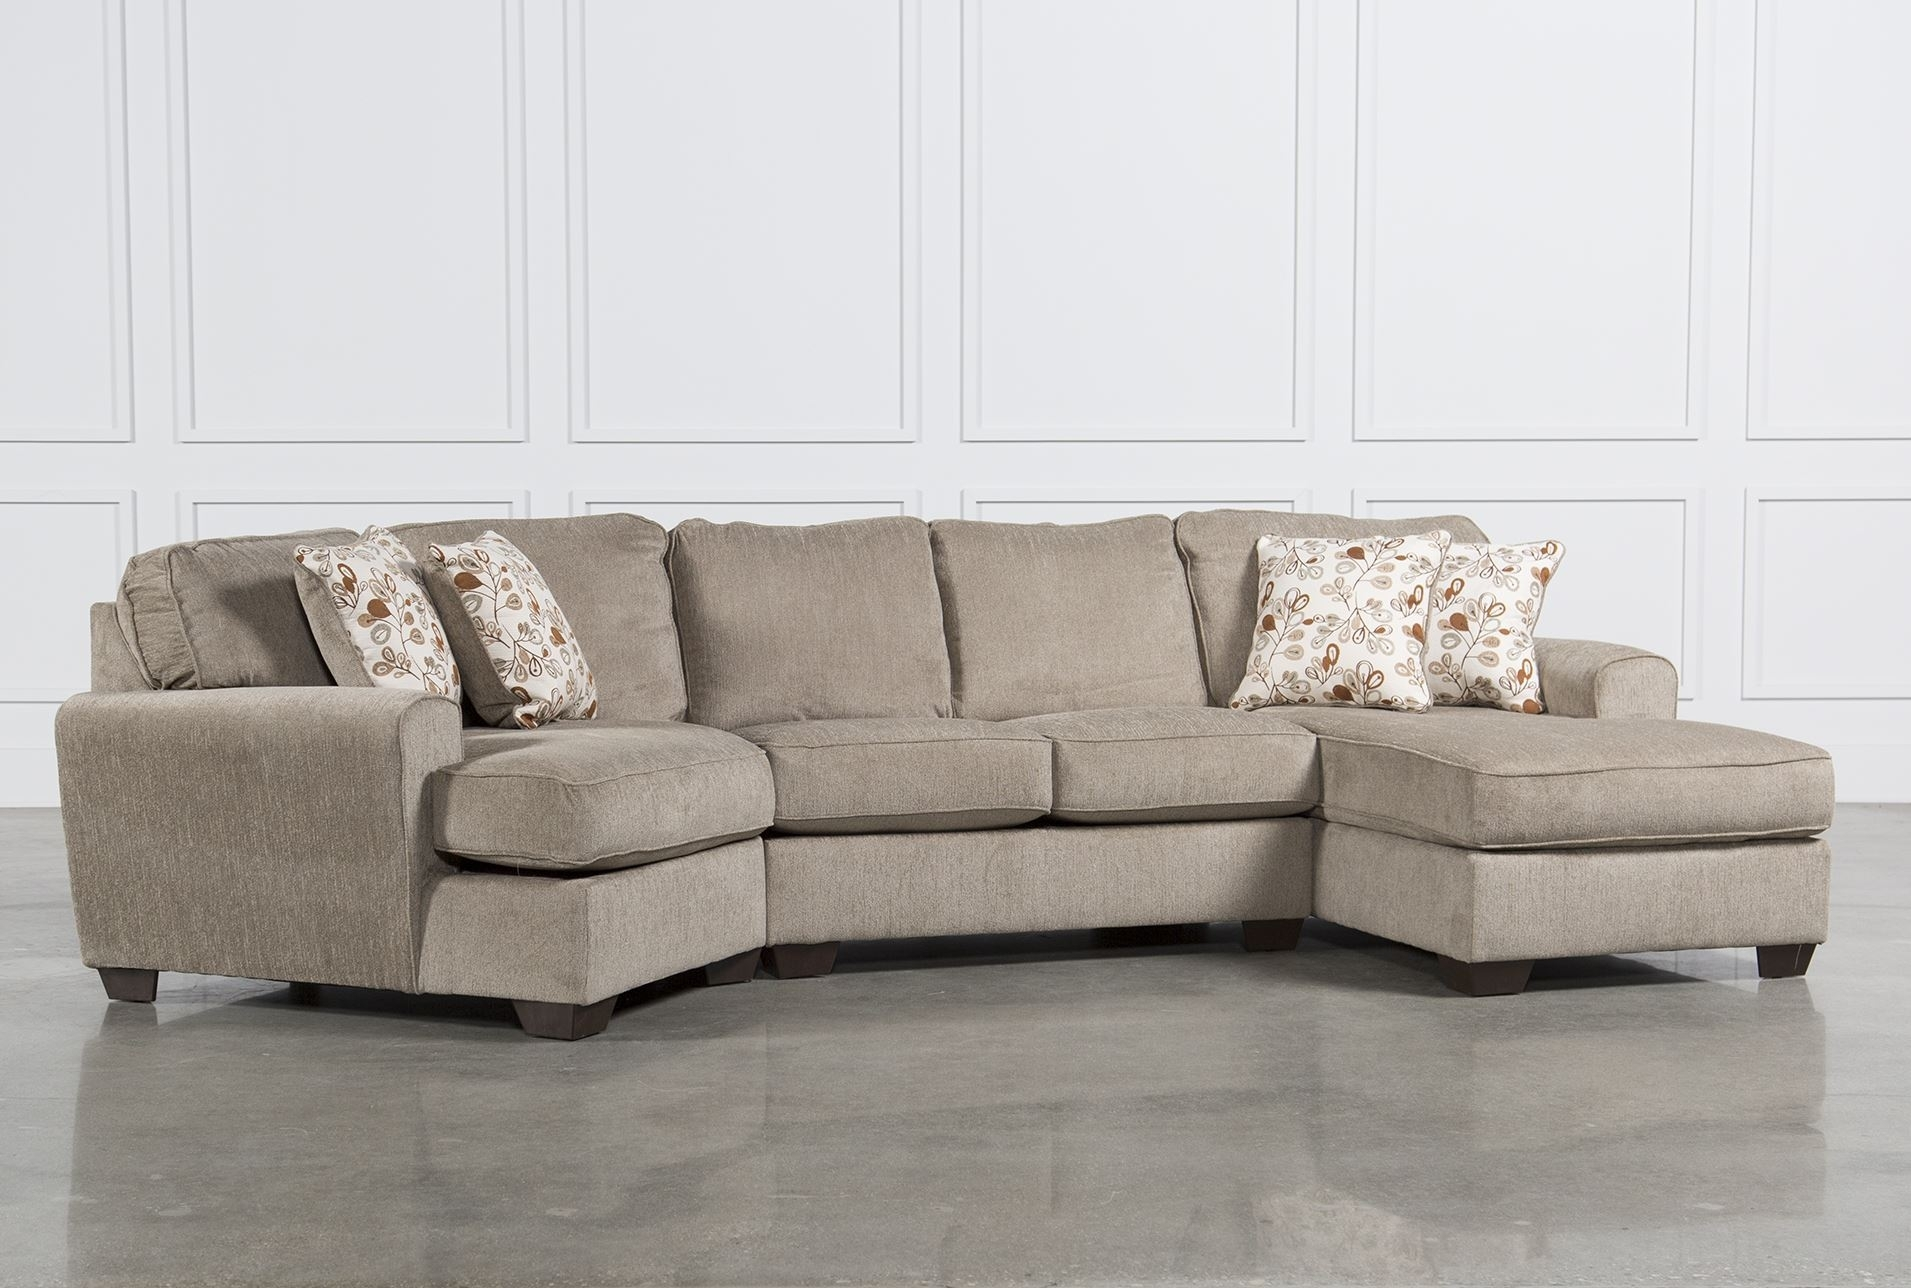 Furniture : Sectional Sofa Gta Sectional Couch El Paso Sectional Pertaining To El Paso Tx Sectional Sofas (Image 5 of 10)